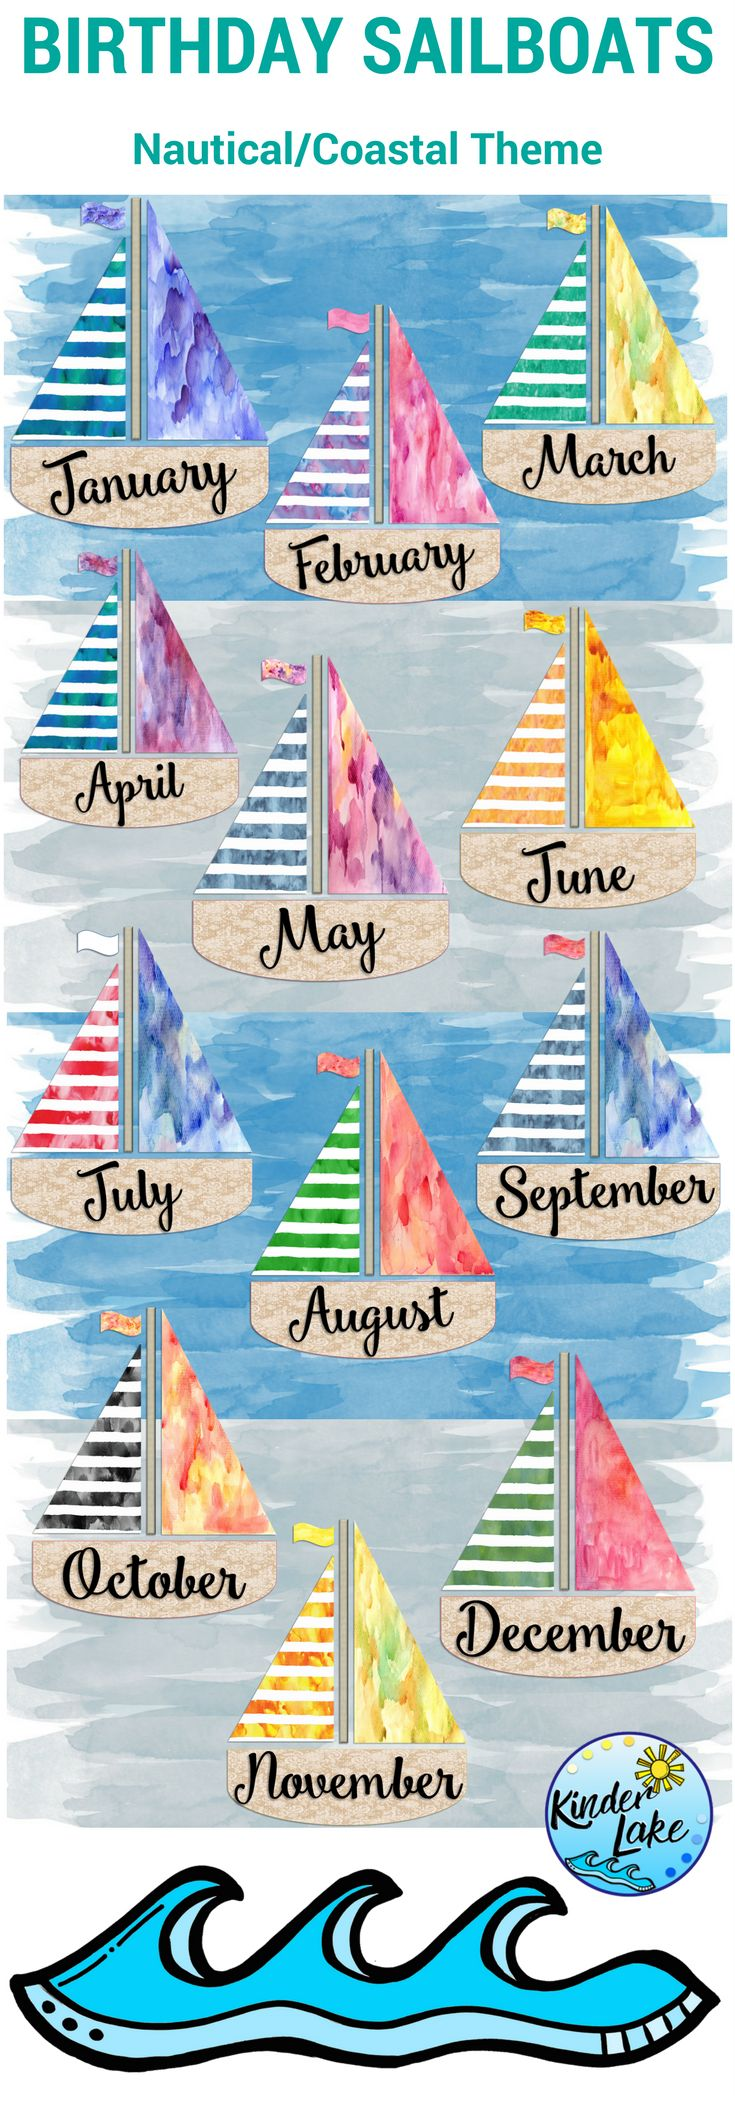 Use this birthday display in your nautical or coastal classroom. It will be a great addition to your decor.